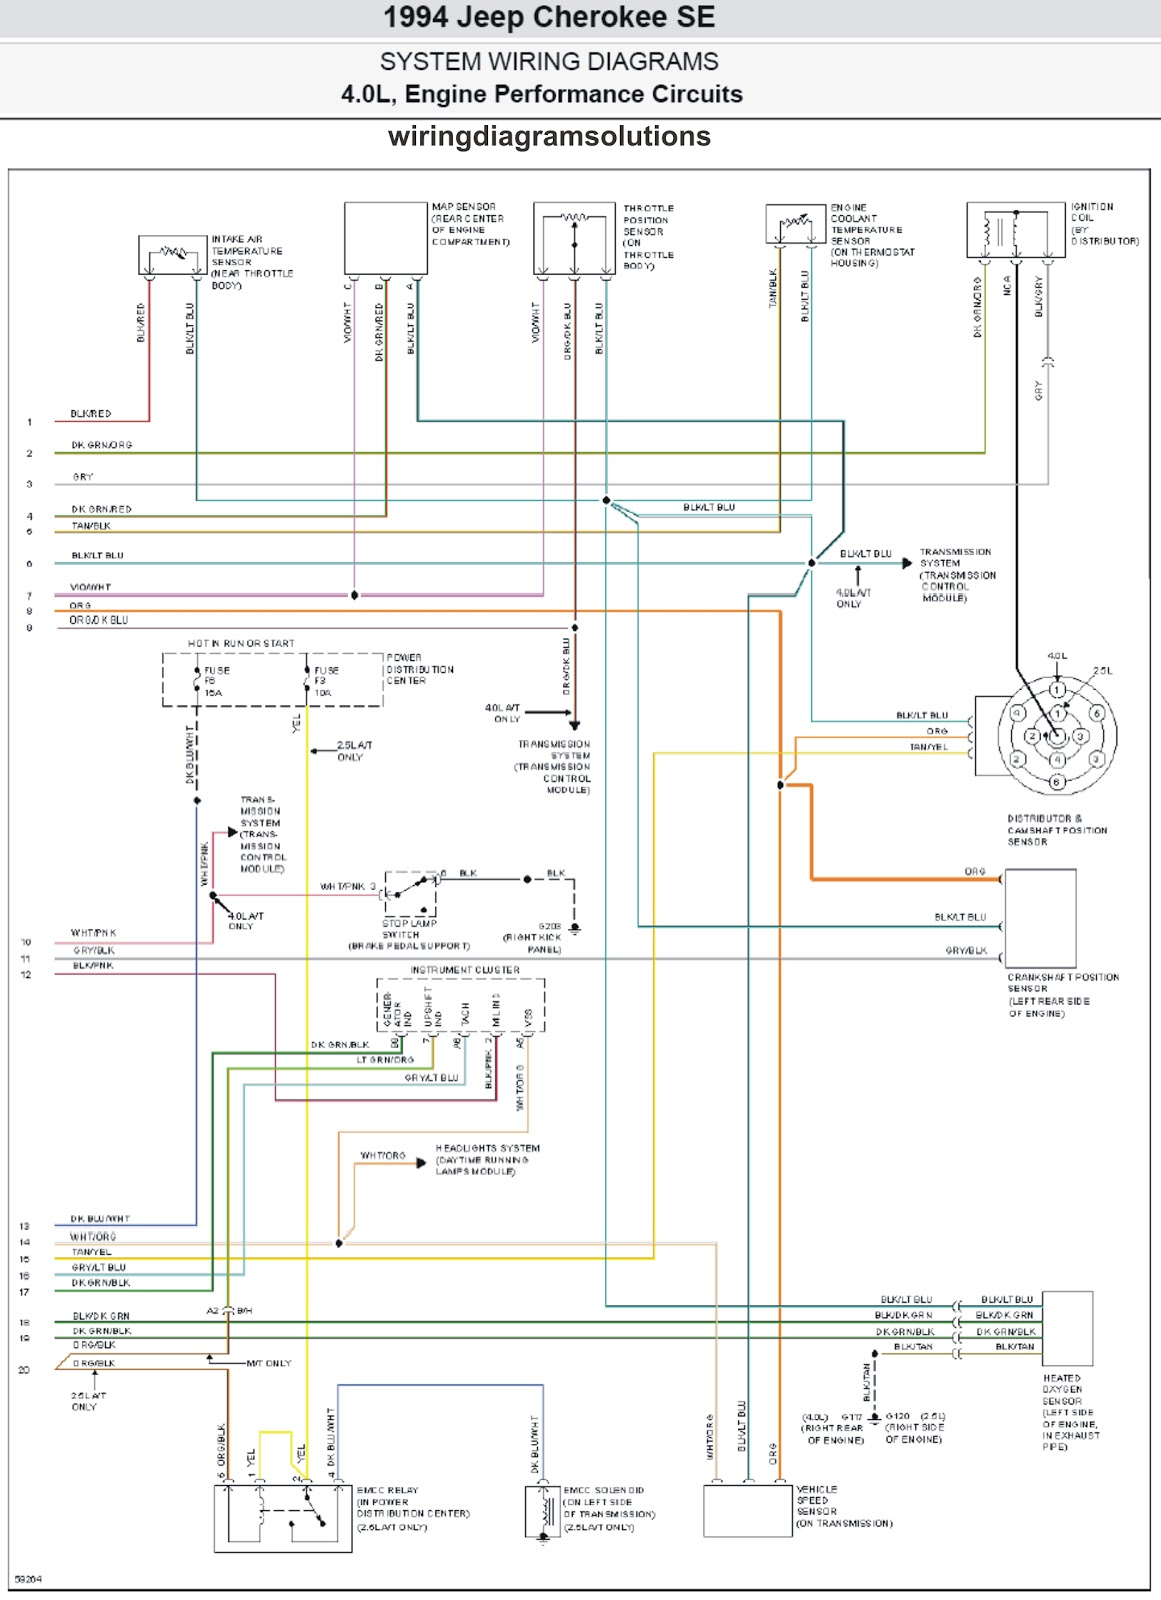 DIAGRAM] 1995 Jeep Cherokee Wiring Diagram FULL Version HD Quality Wiring  Diagram - CARZ99.K-DANSE.FRDatabase diagramming tool - K-danse.fr